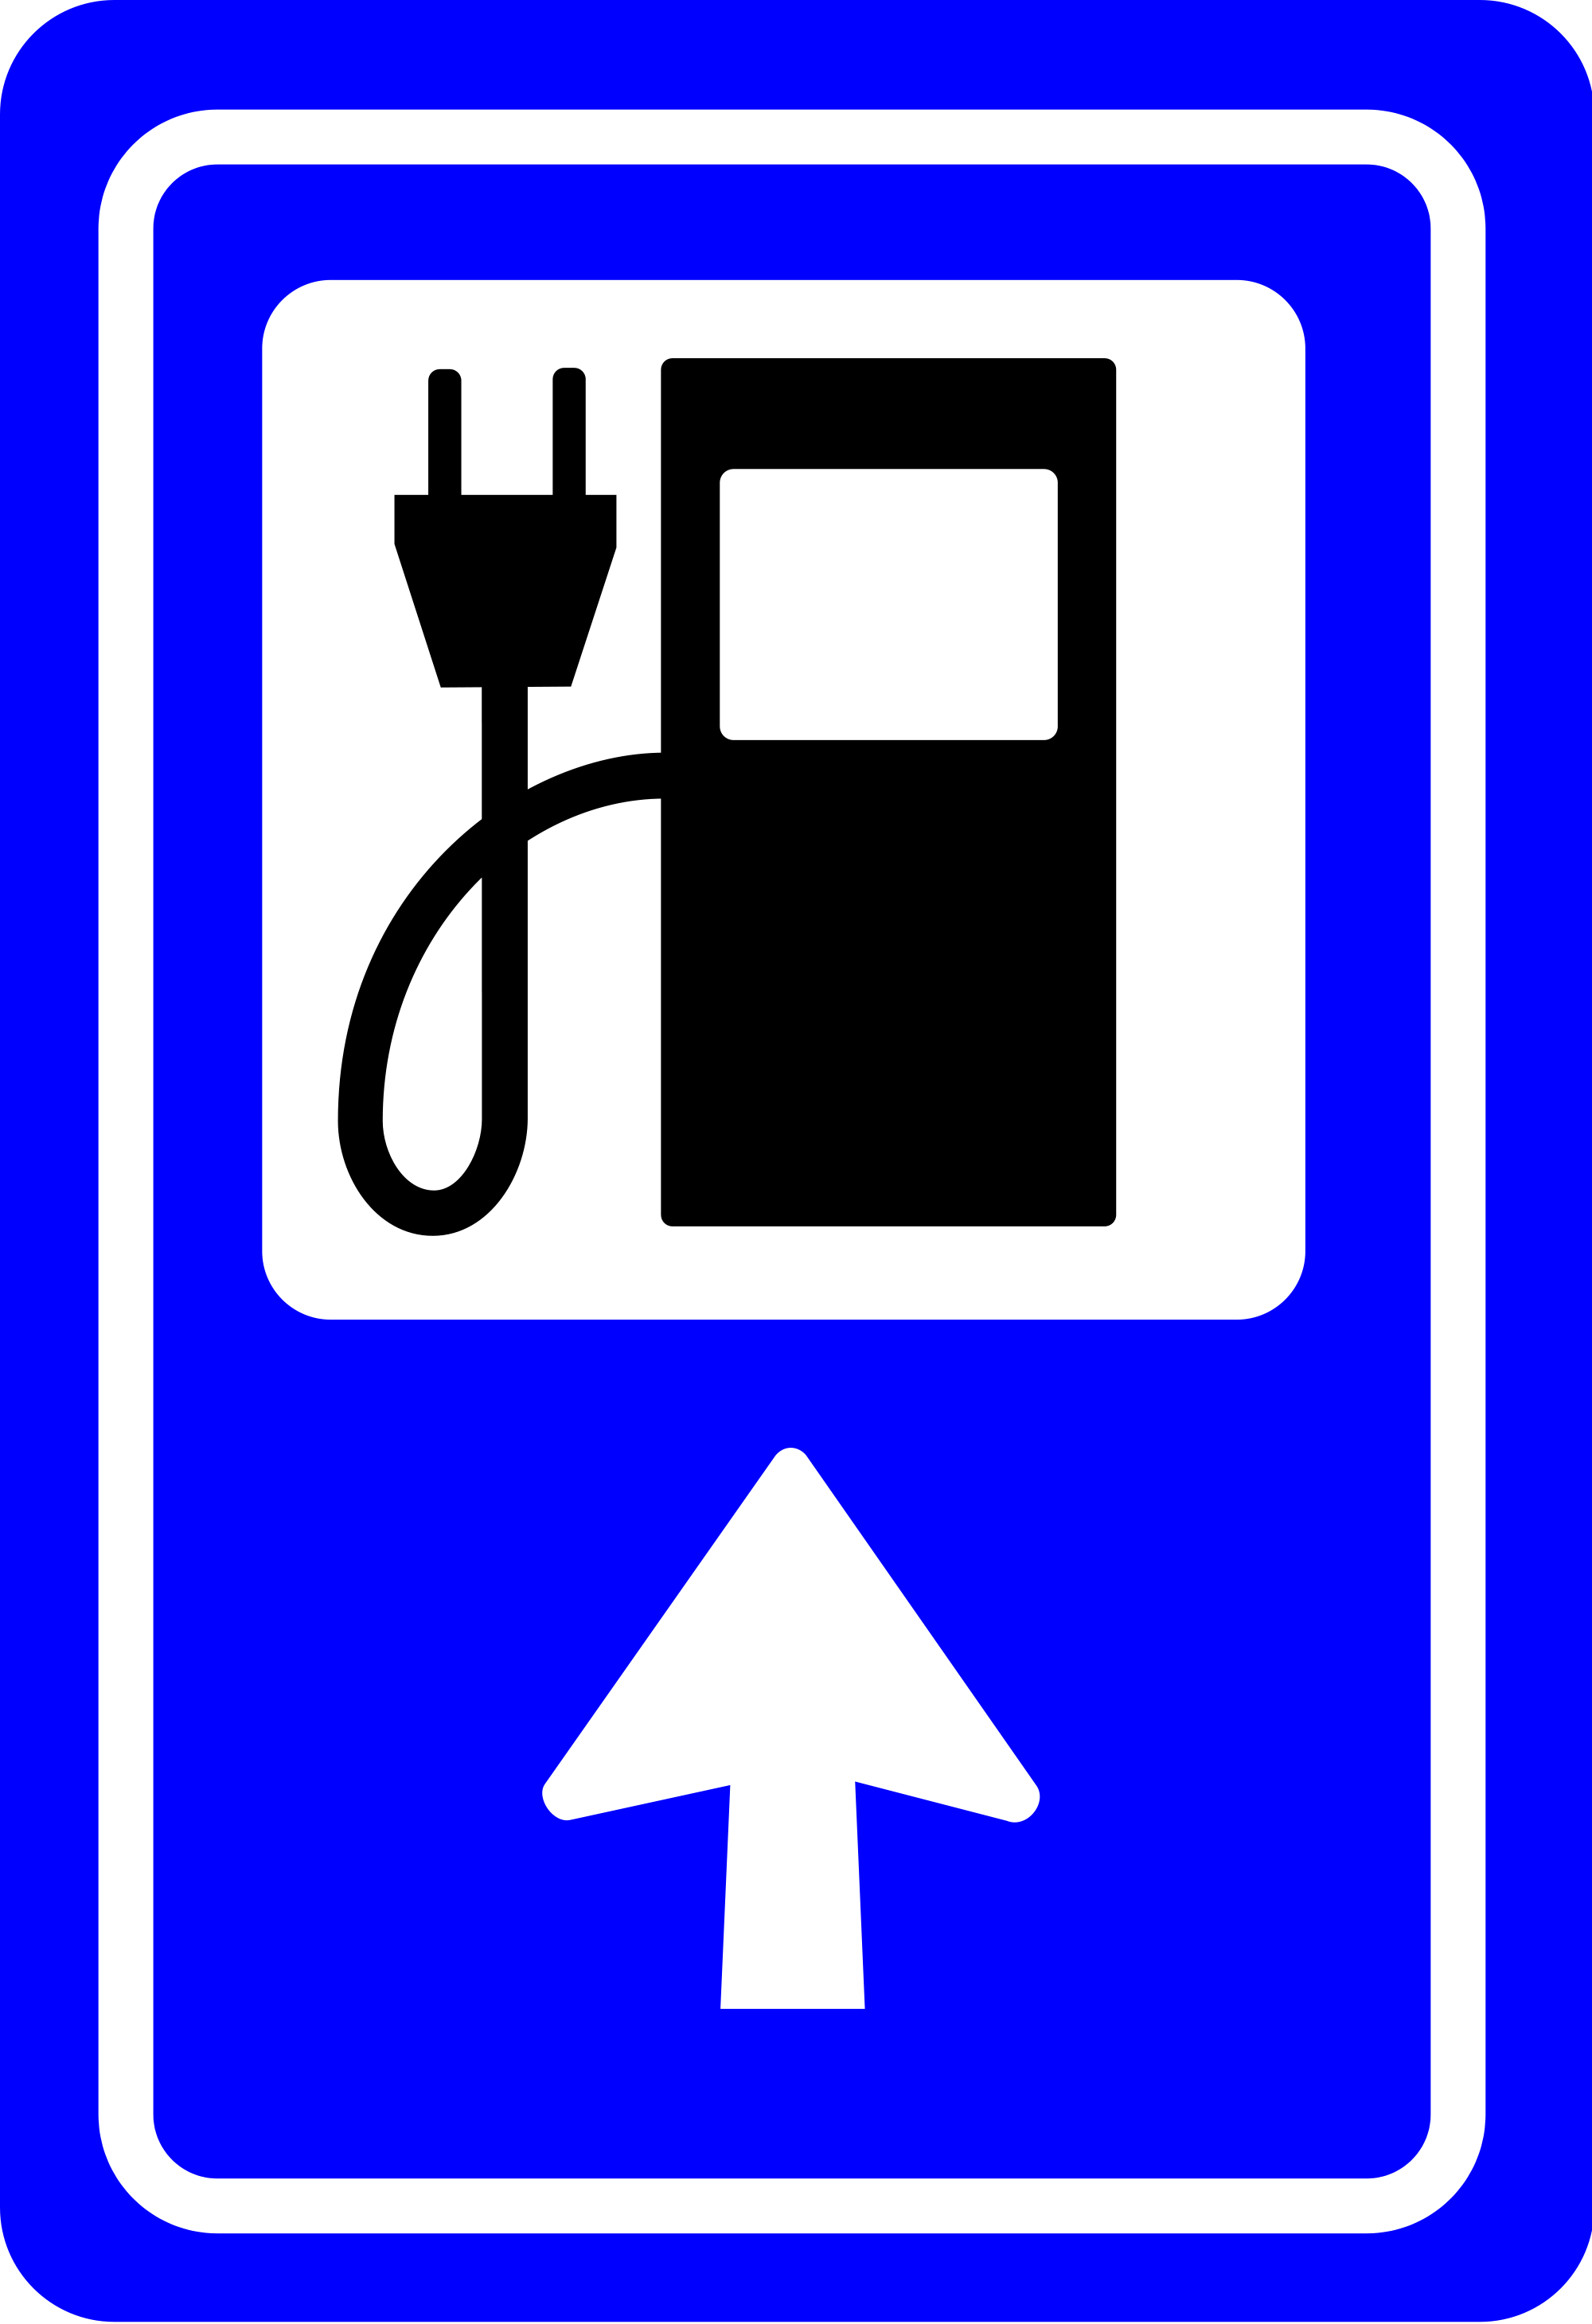 2000px-Free_EV_charge_station_sign_evinfra.svg.png